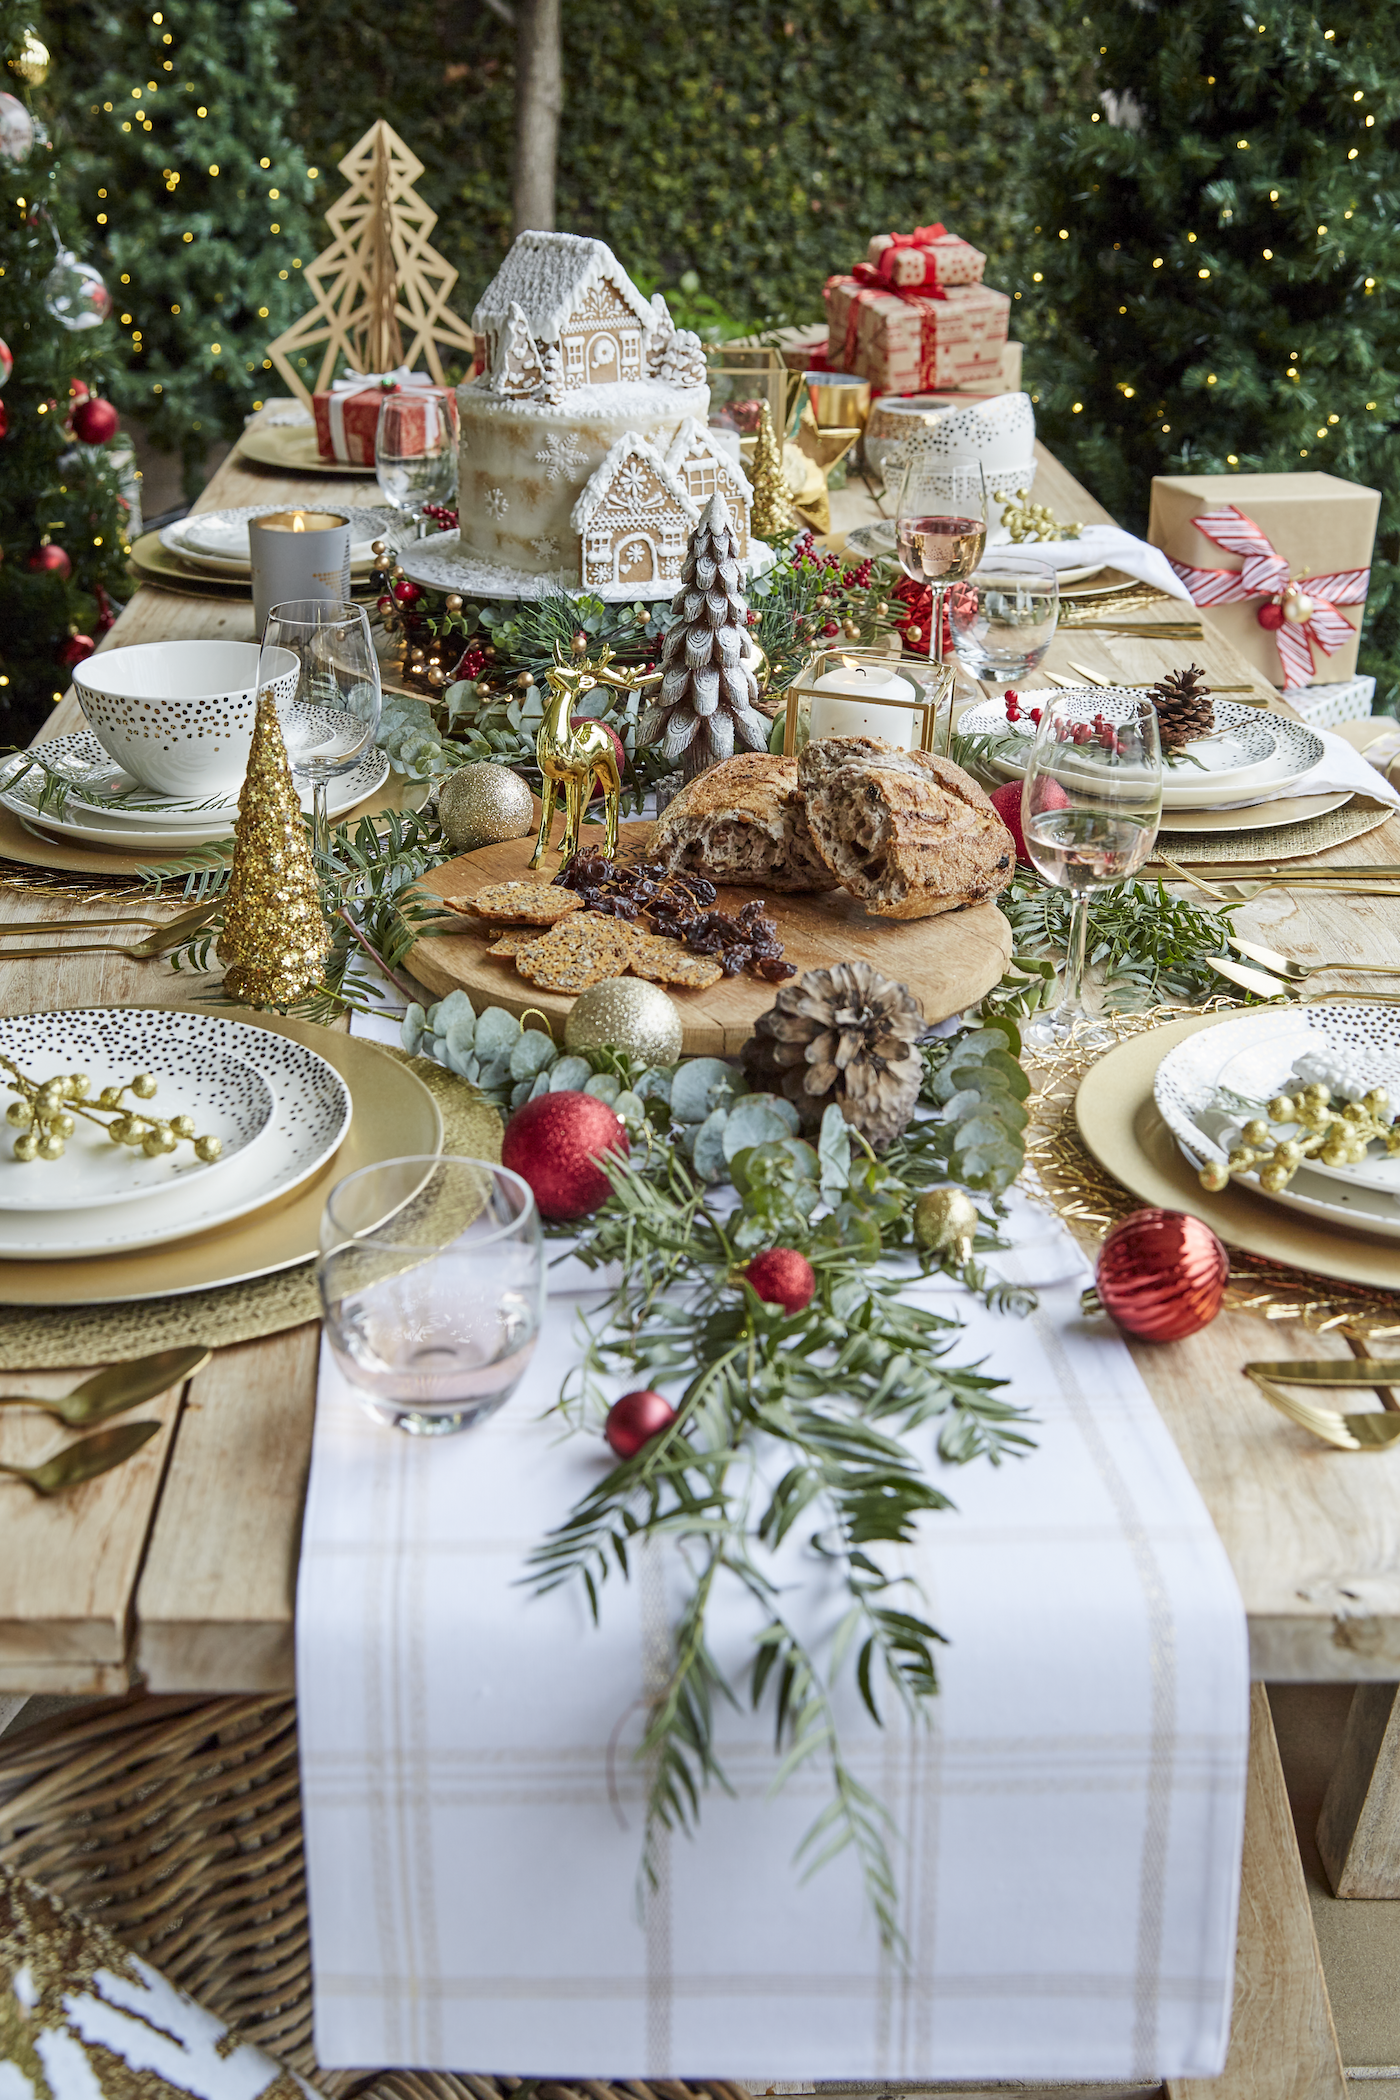 How Lucky Are We To Have Christmas In The Summer Time Decorate Your Outdoor Table Christmas Centerpieces Christmas Table Decorations Christmas Table Settings